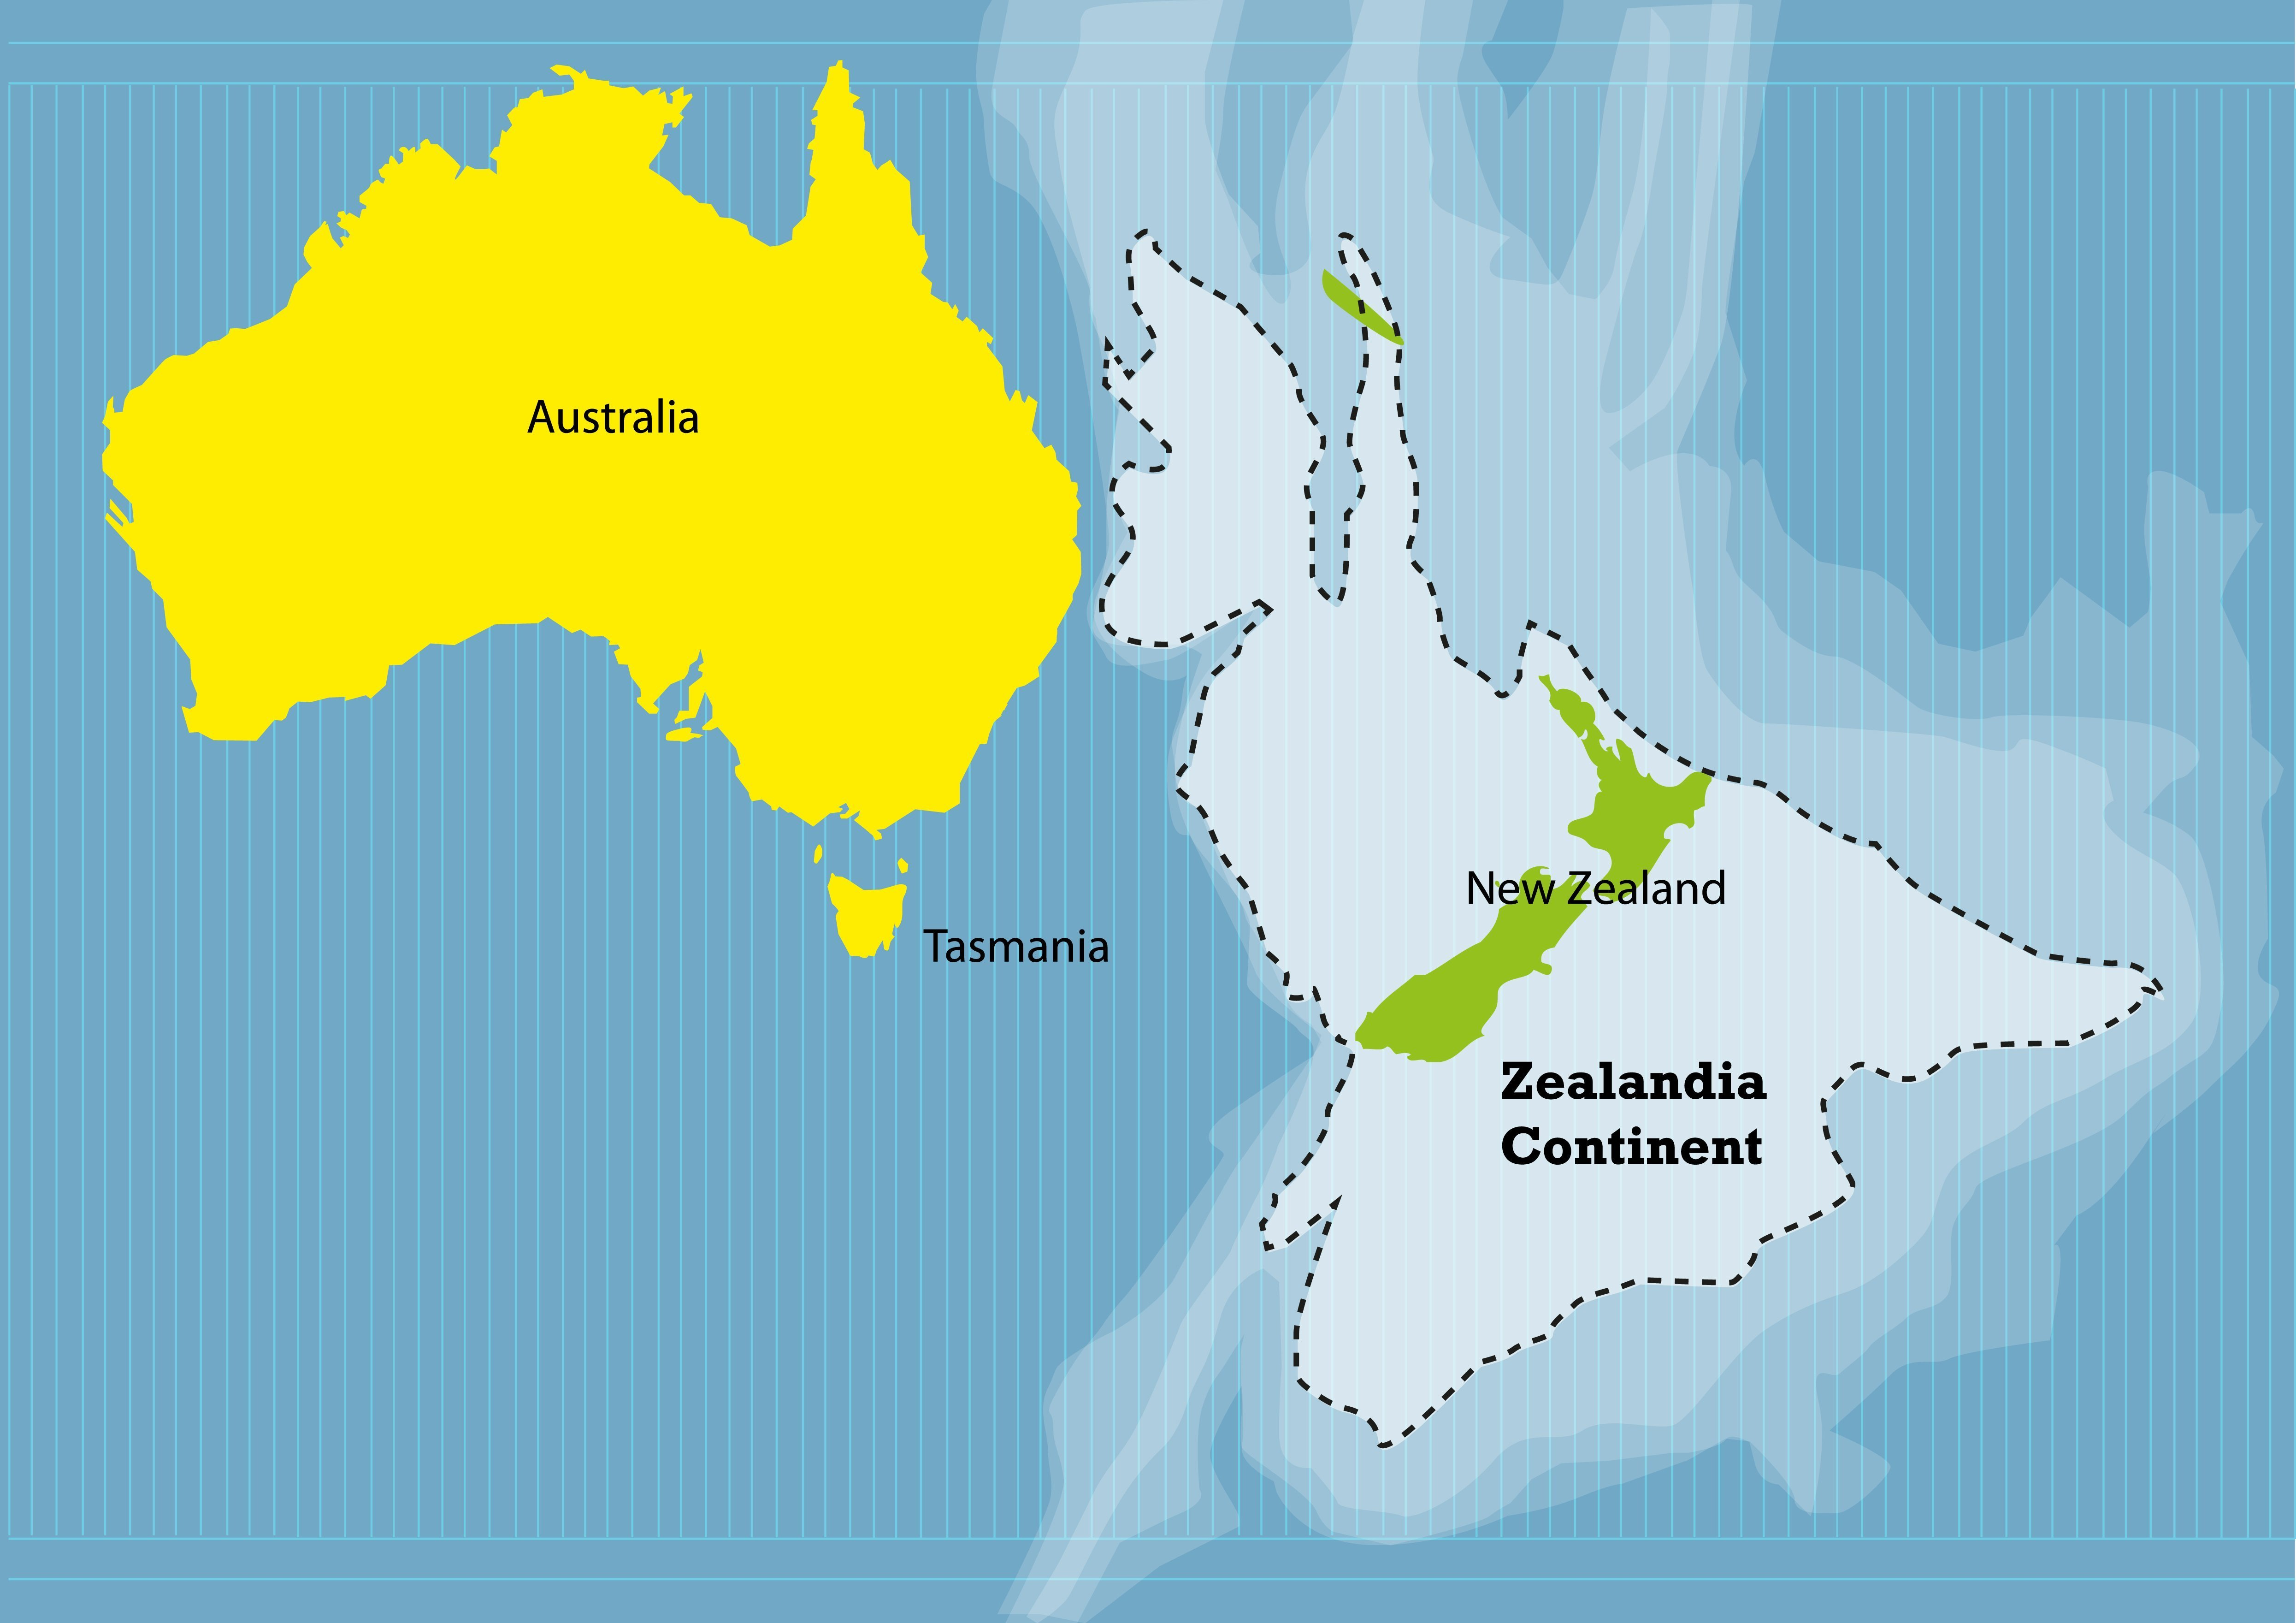 What Continent Is New Zealand Part Of